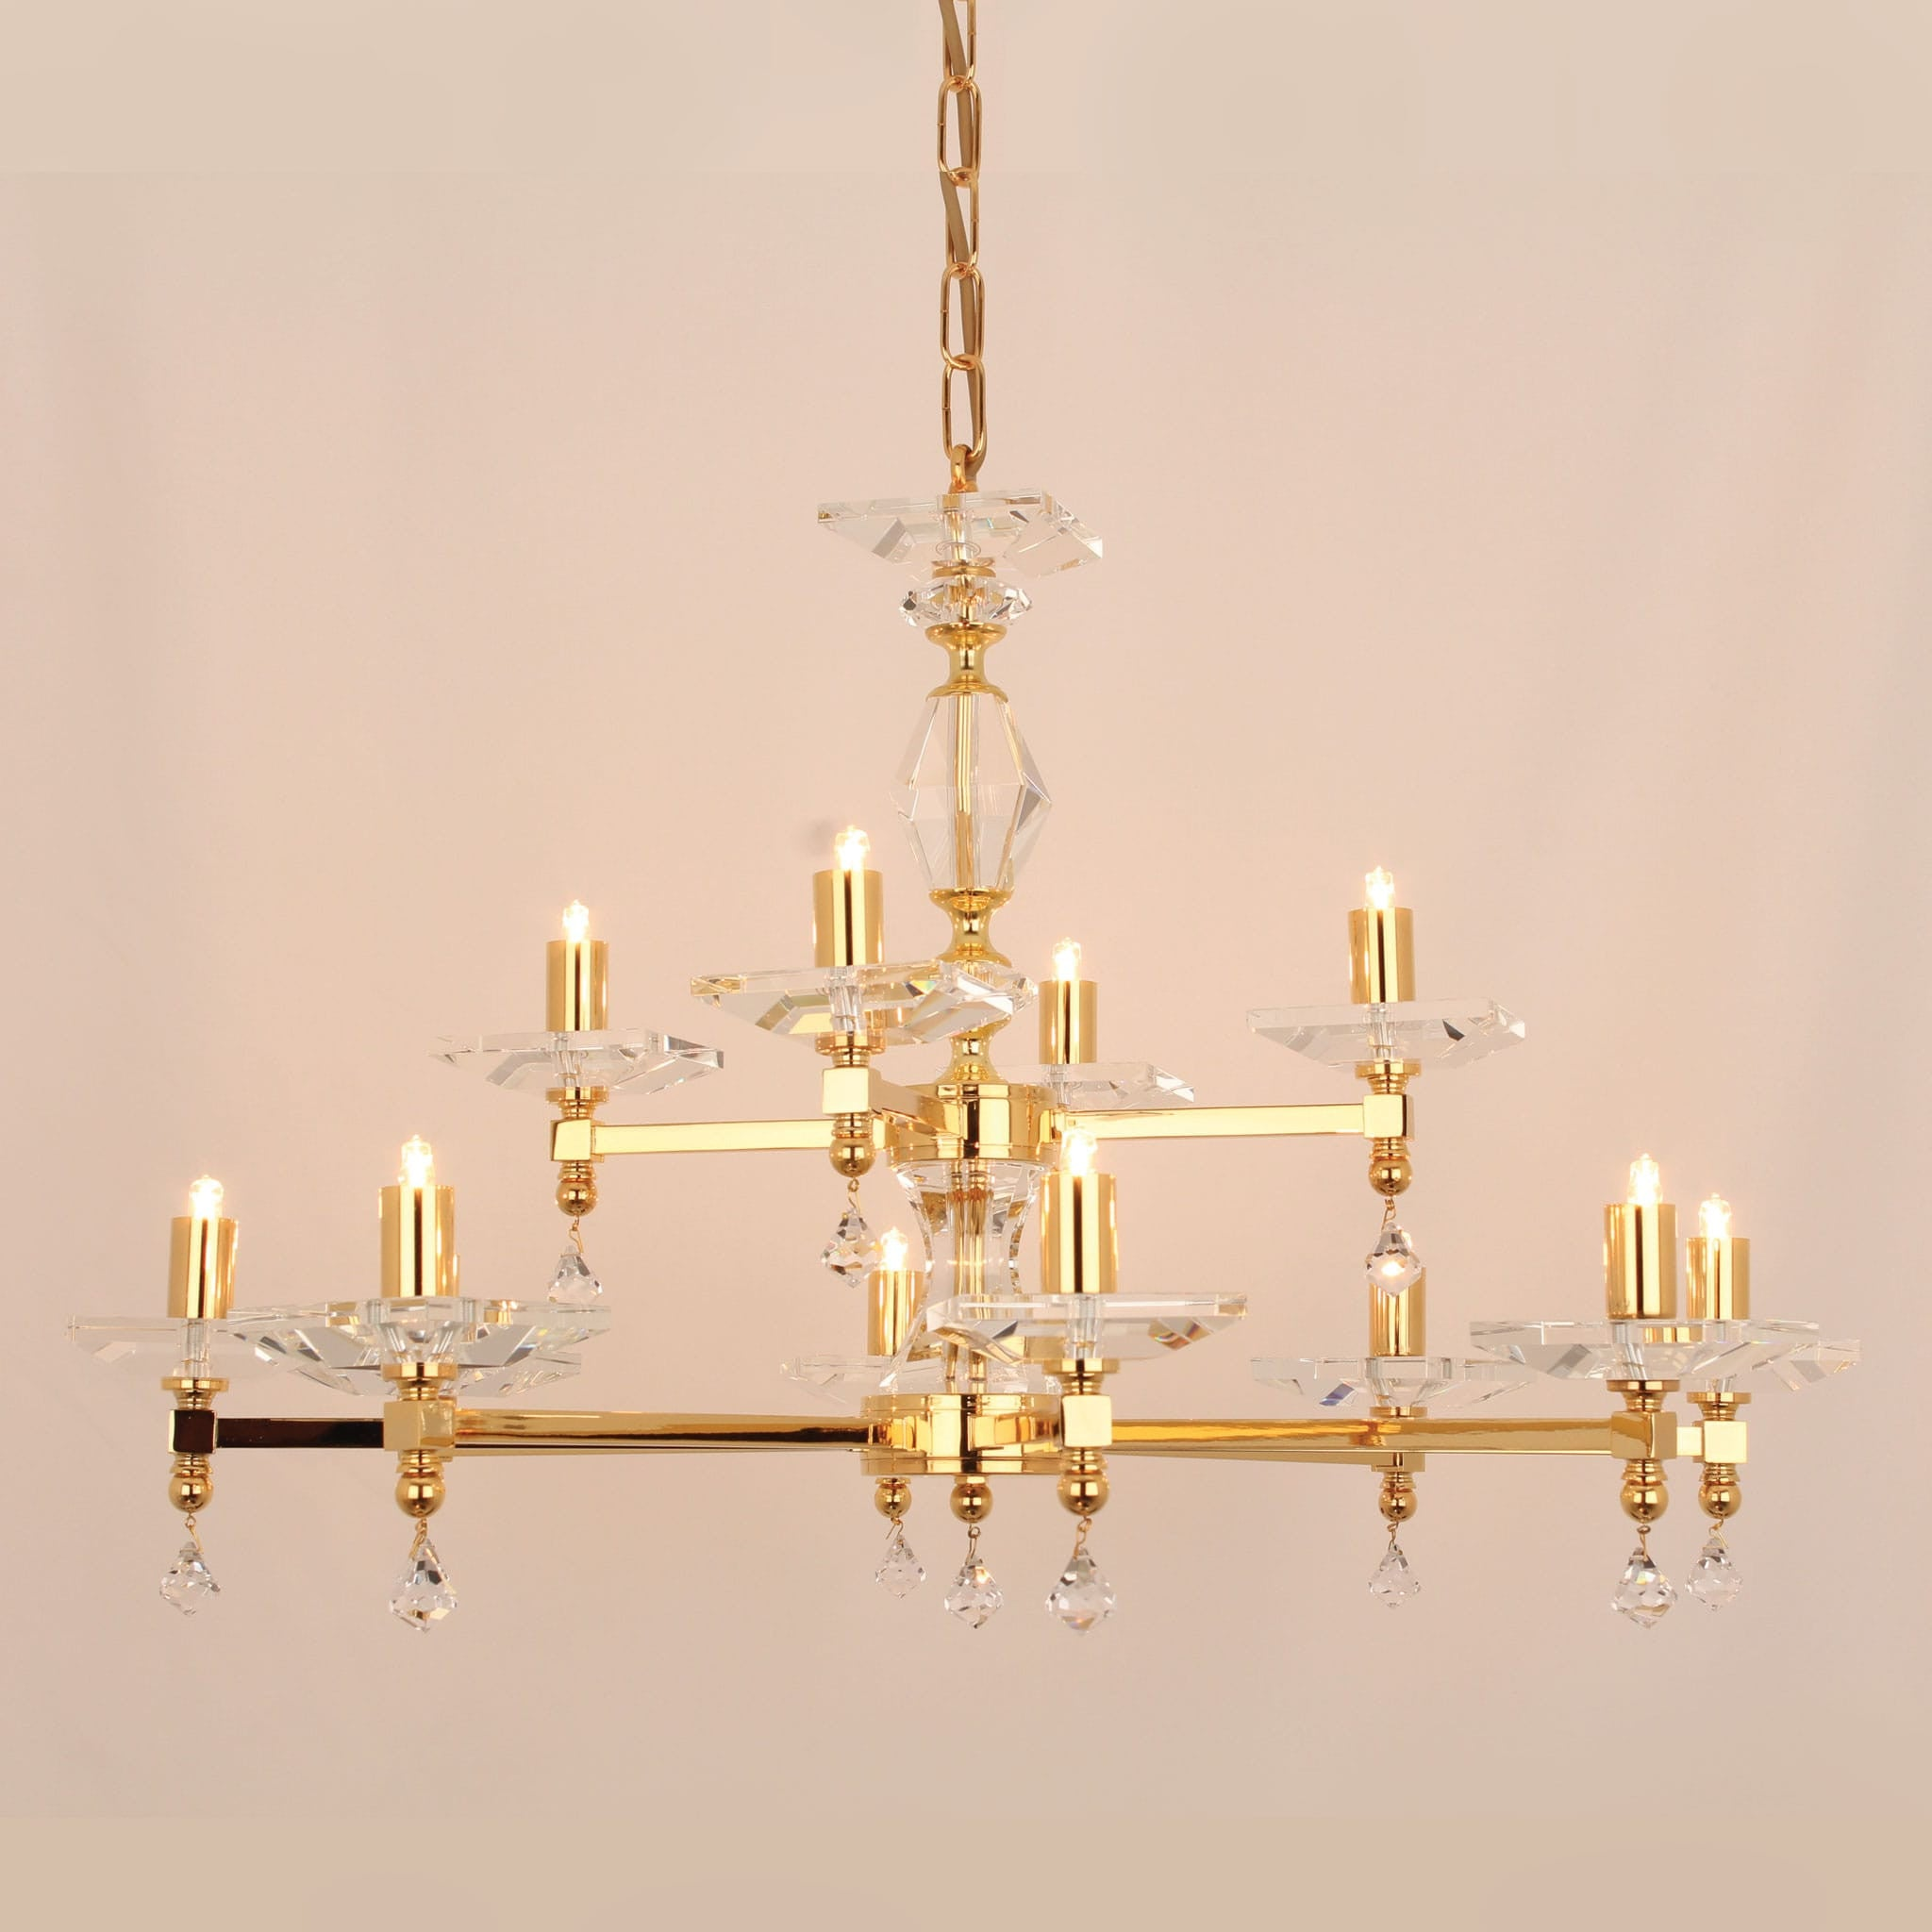 Impex capri 12 light gold optical glass chandelier chandelier shack impex capri 12 light gold optical glass chandelier sth0405484g mozeypictures Images